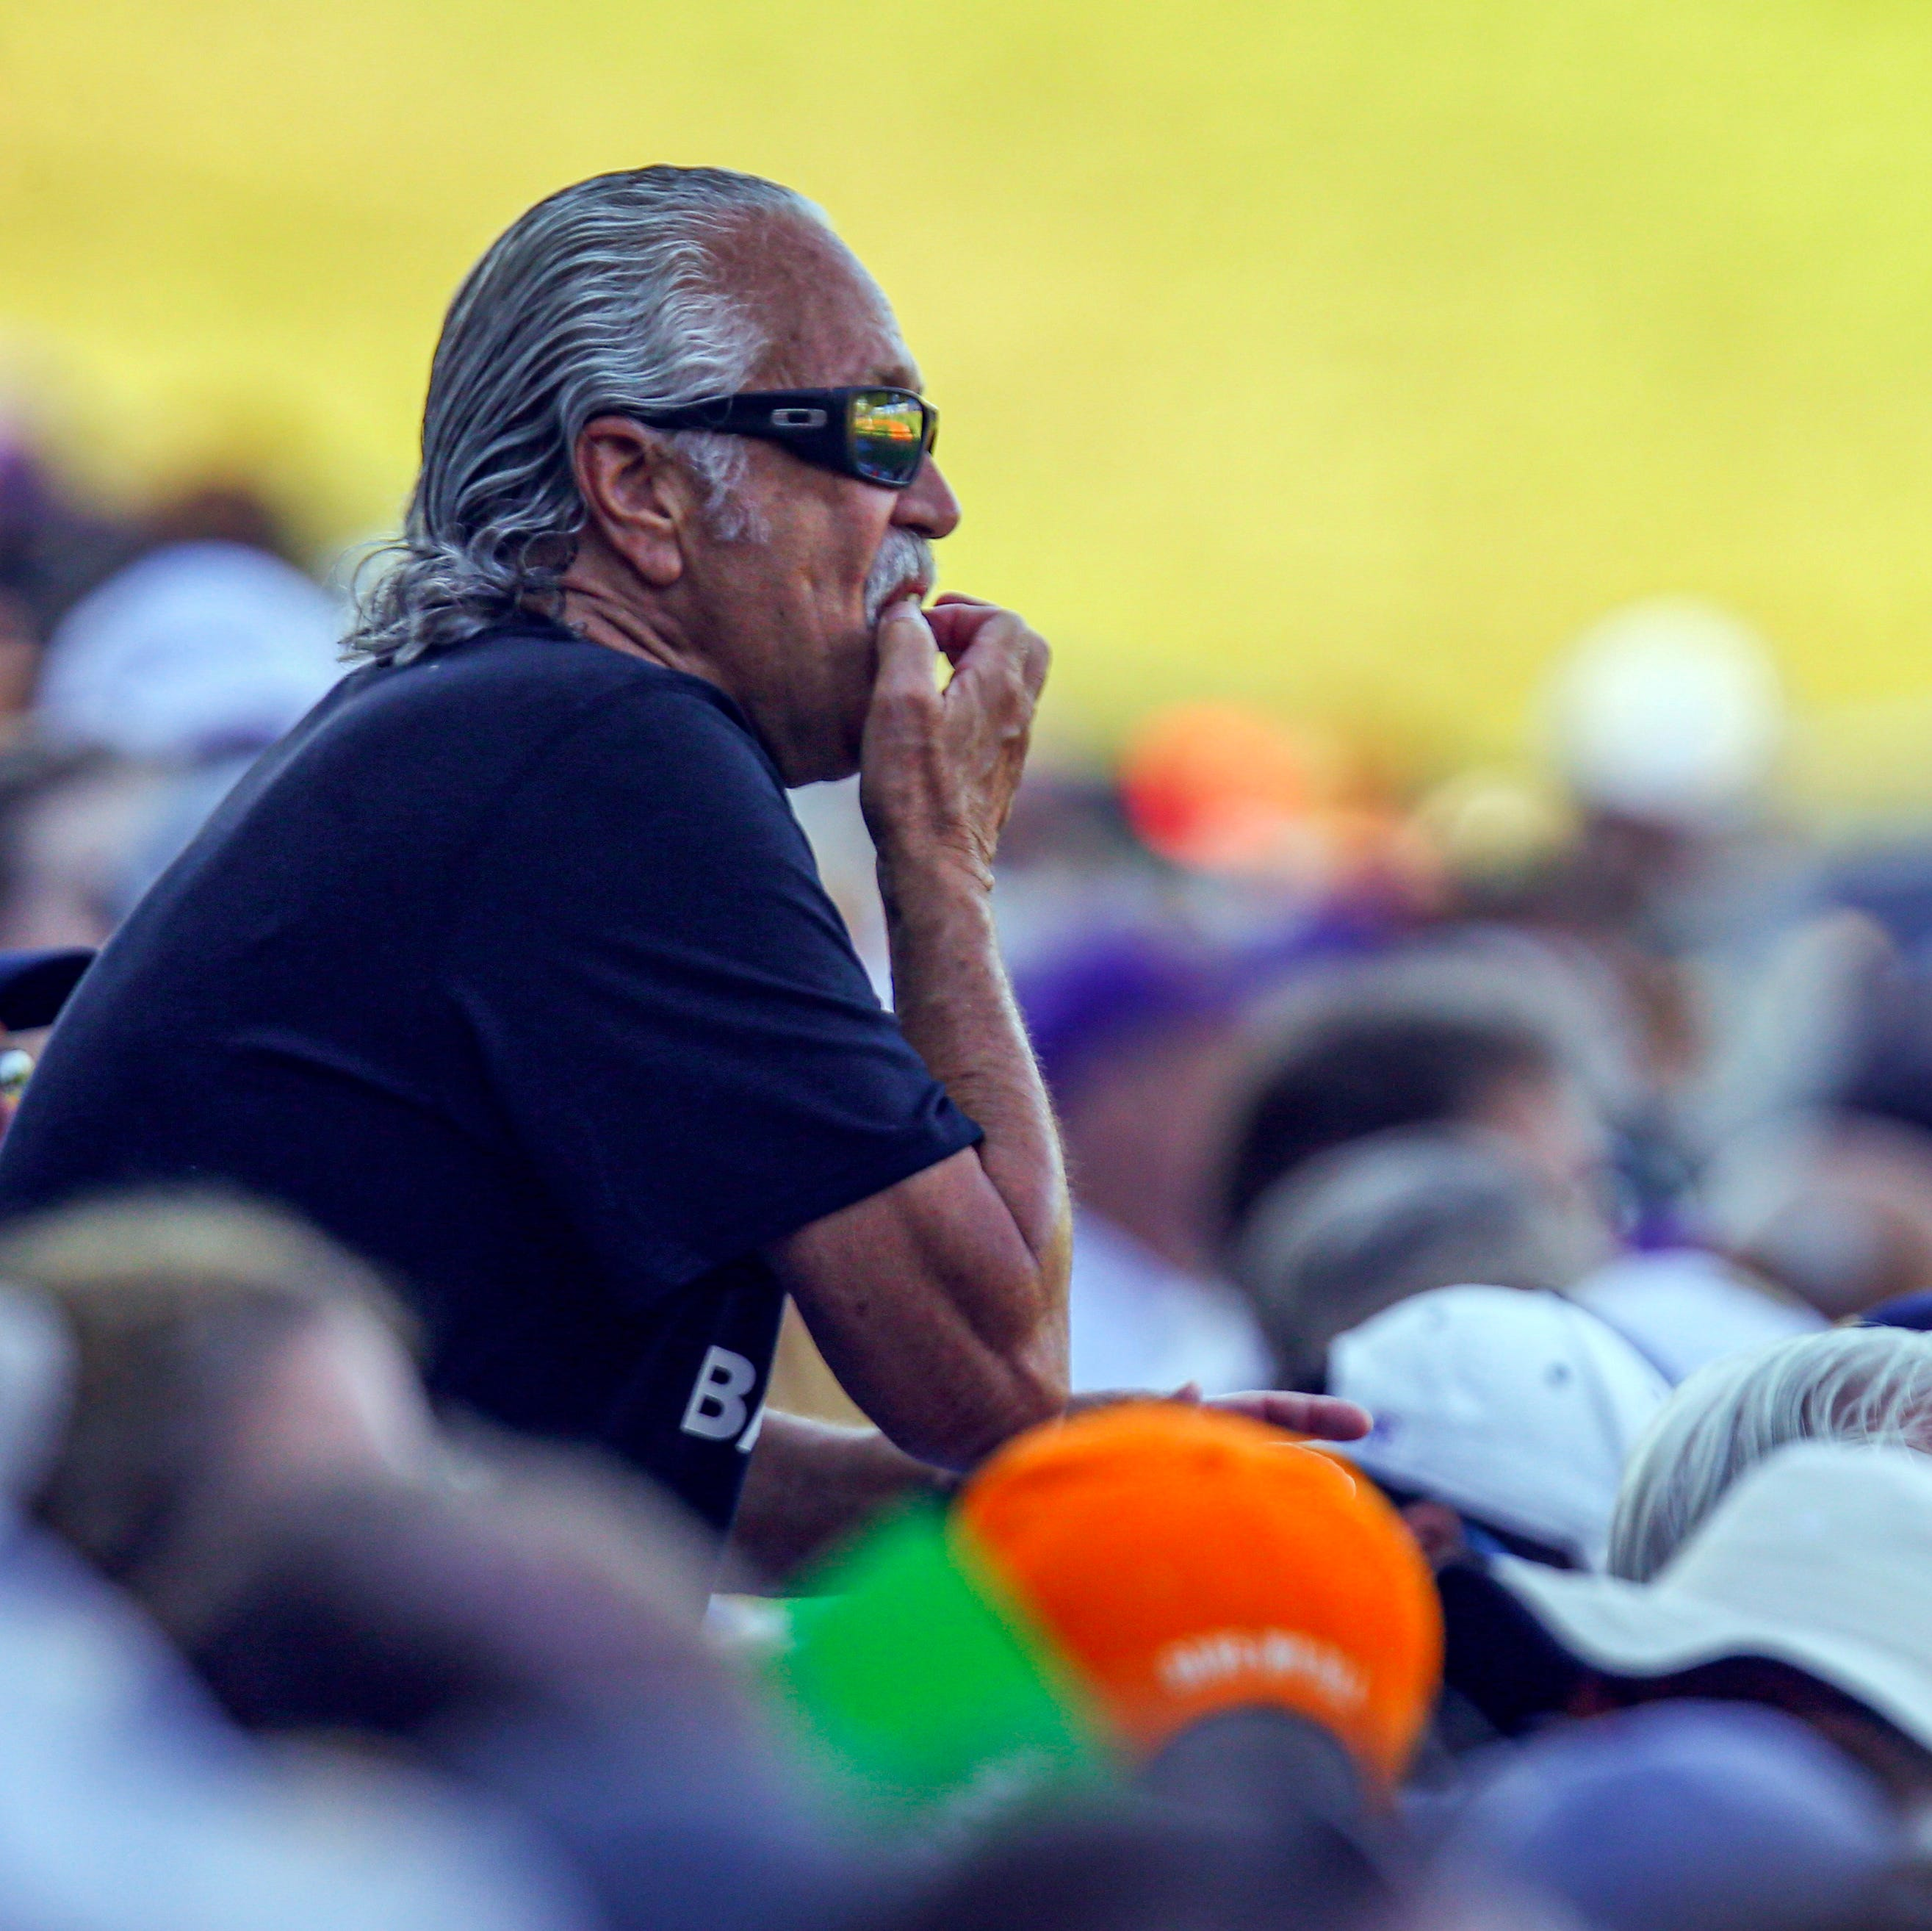 Vandy whistler draws attention from security at SEC baseball tournament vs. LSU